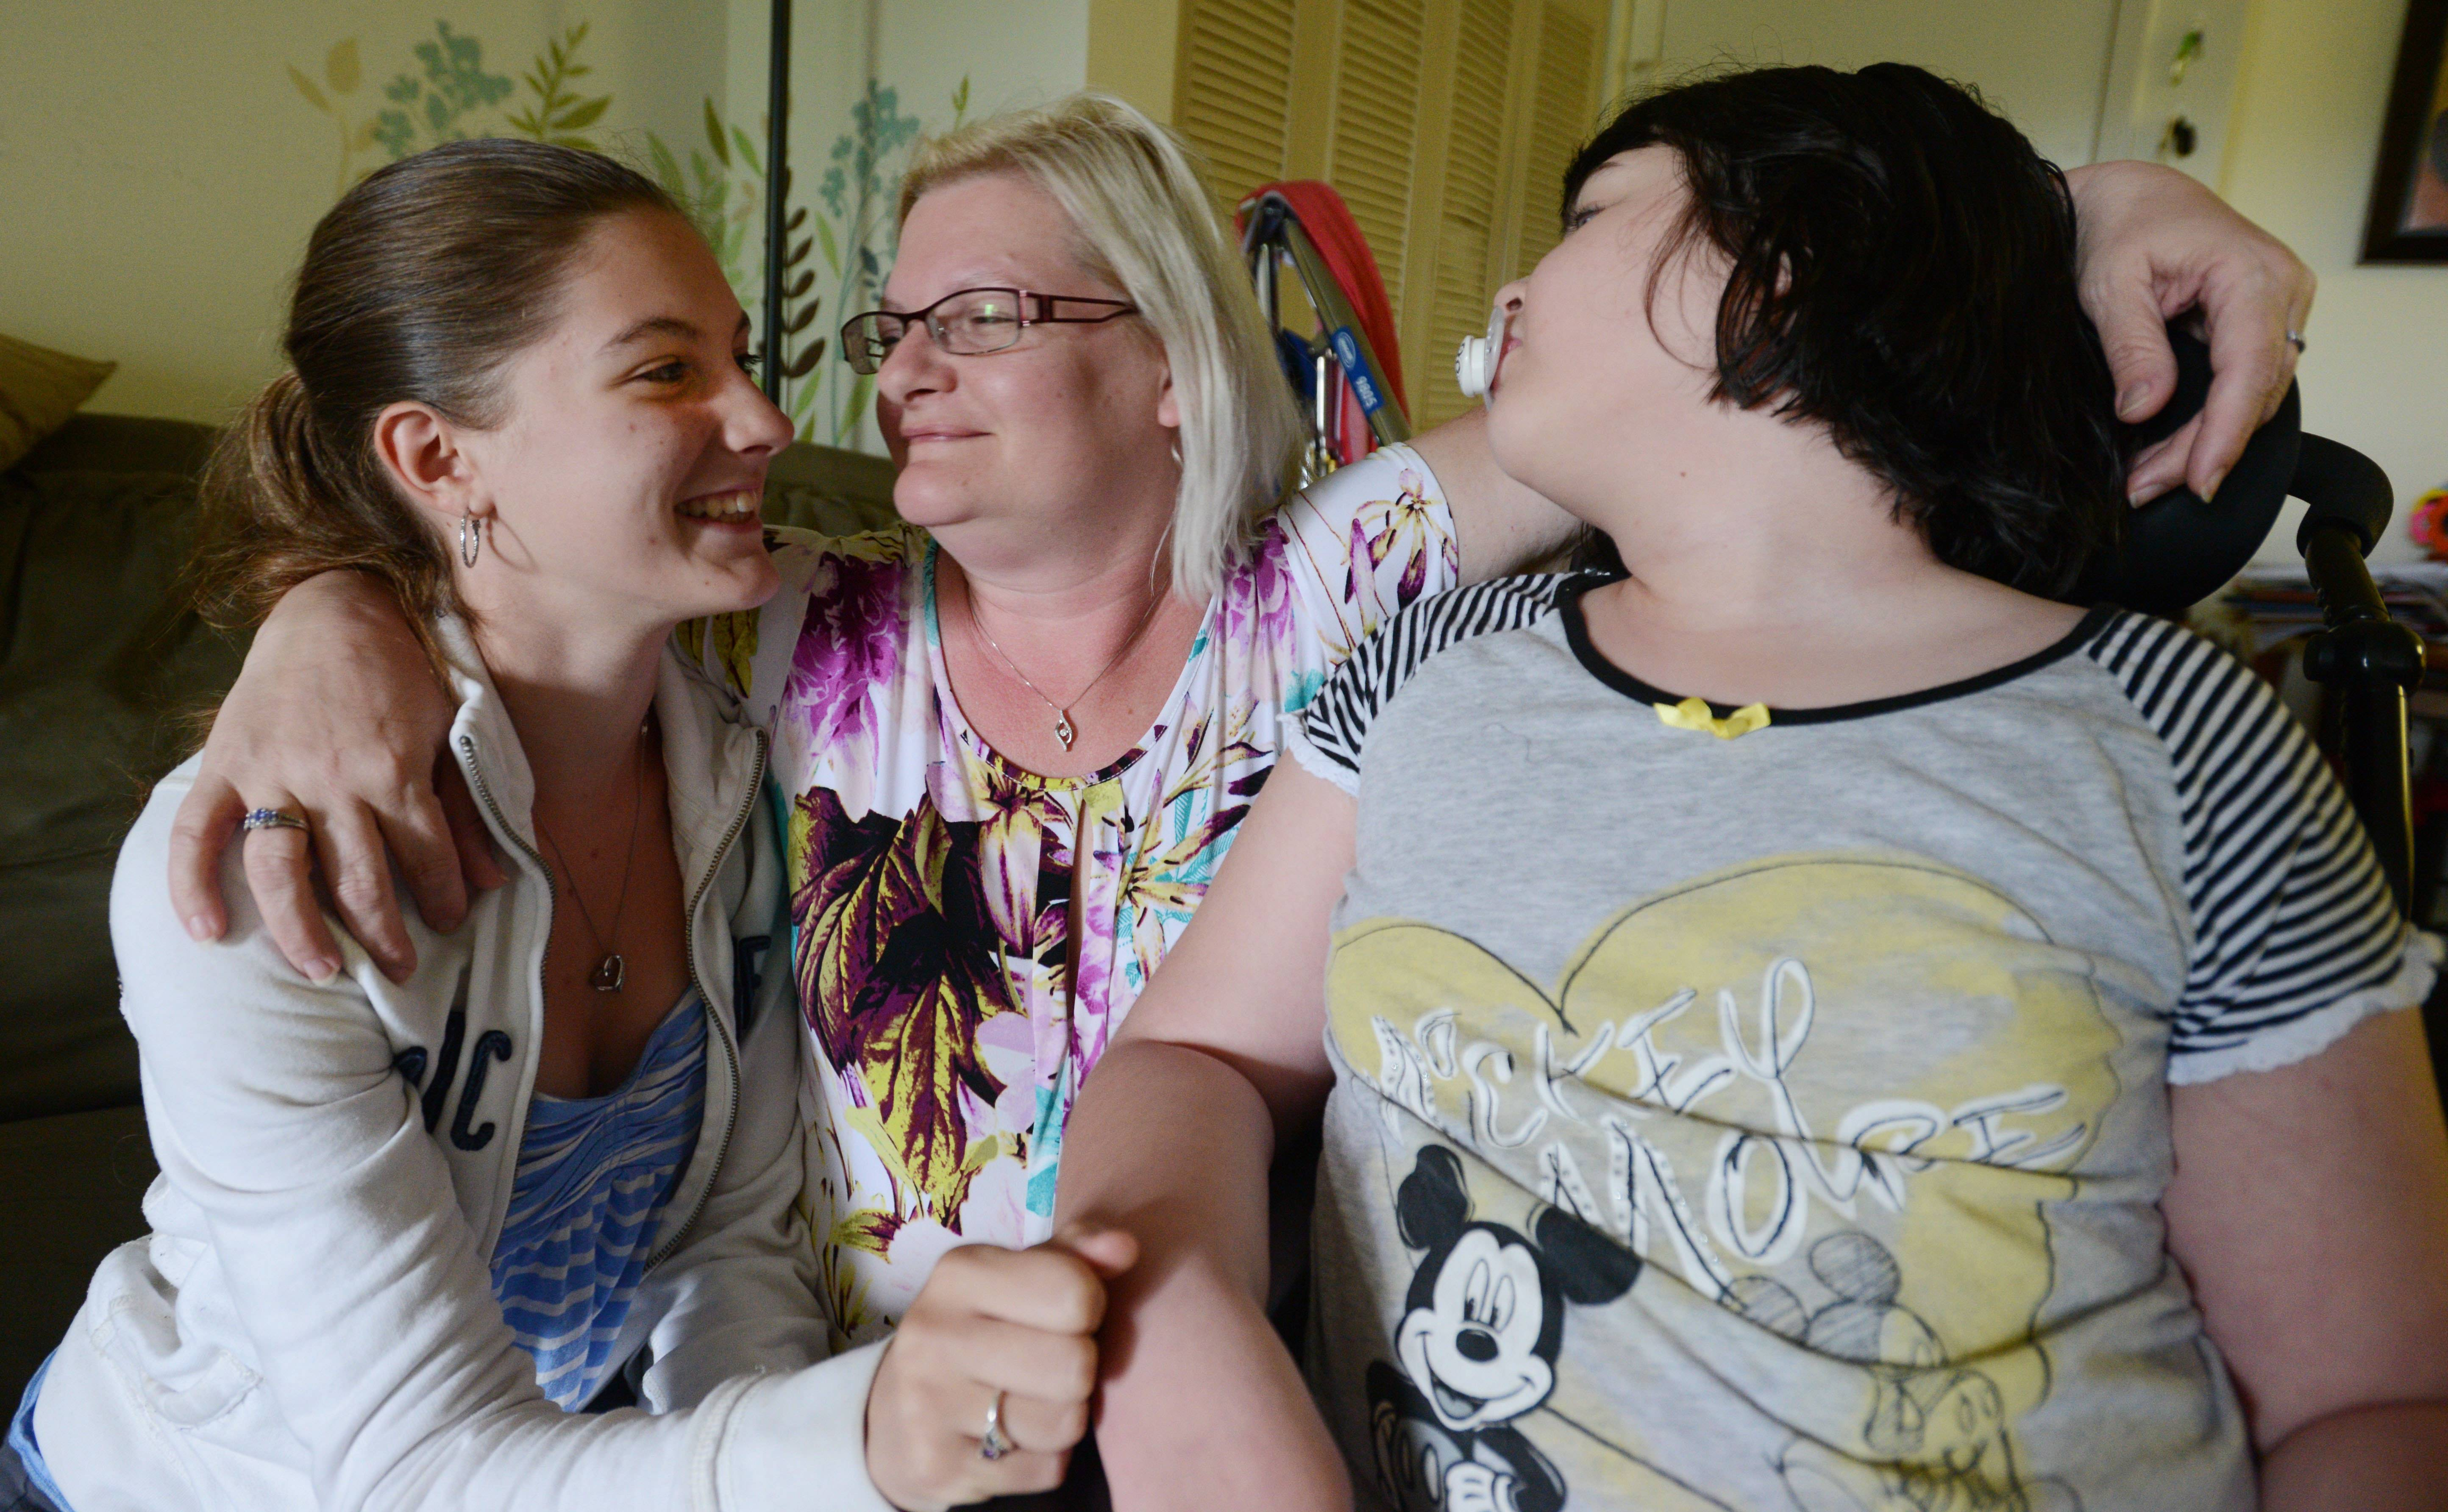 While willing to talk about the tough times that led her to a food pantry, mom and new college graduate Ellen Tucker shares a happy moment with daughters Sydney, 14, and Emma, 11, who has life-threatening disabilities.